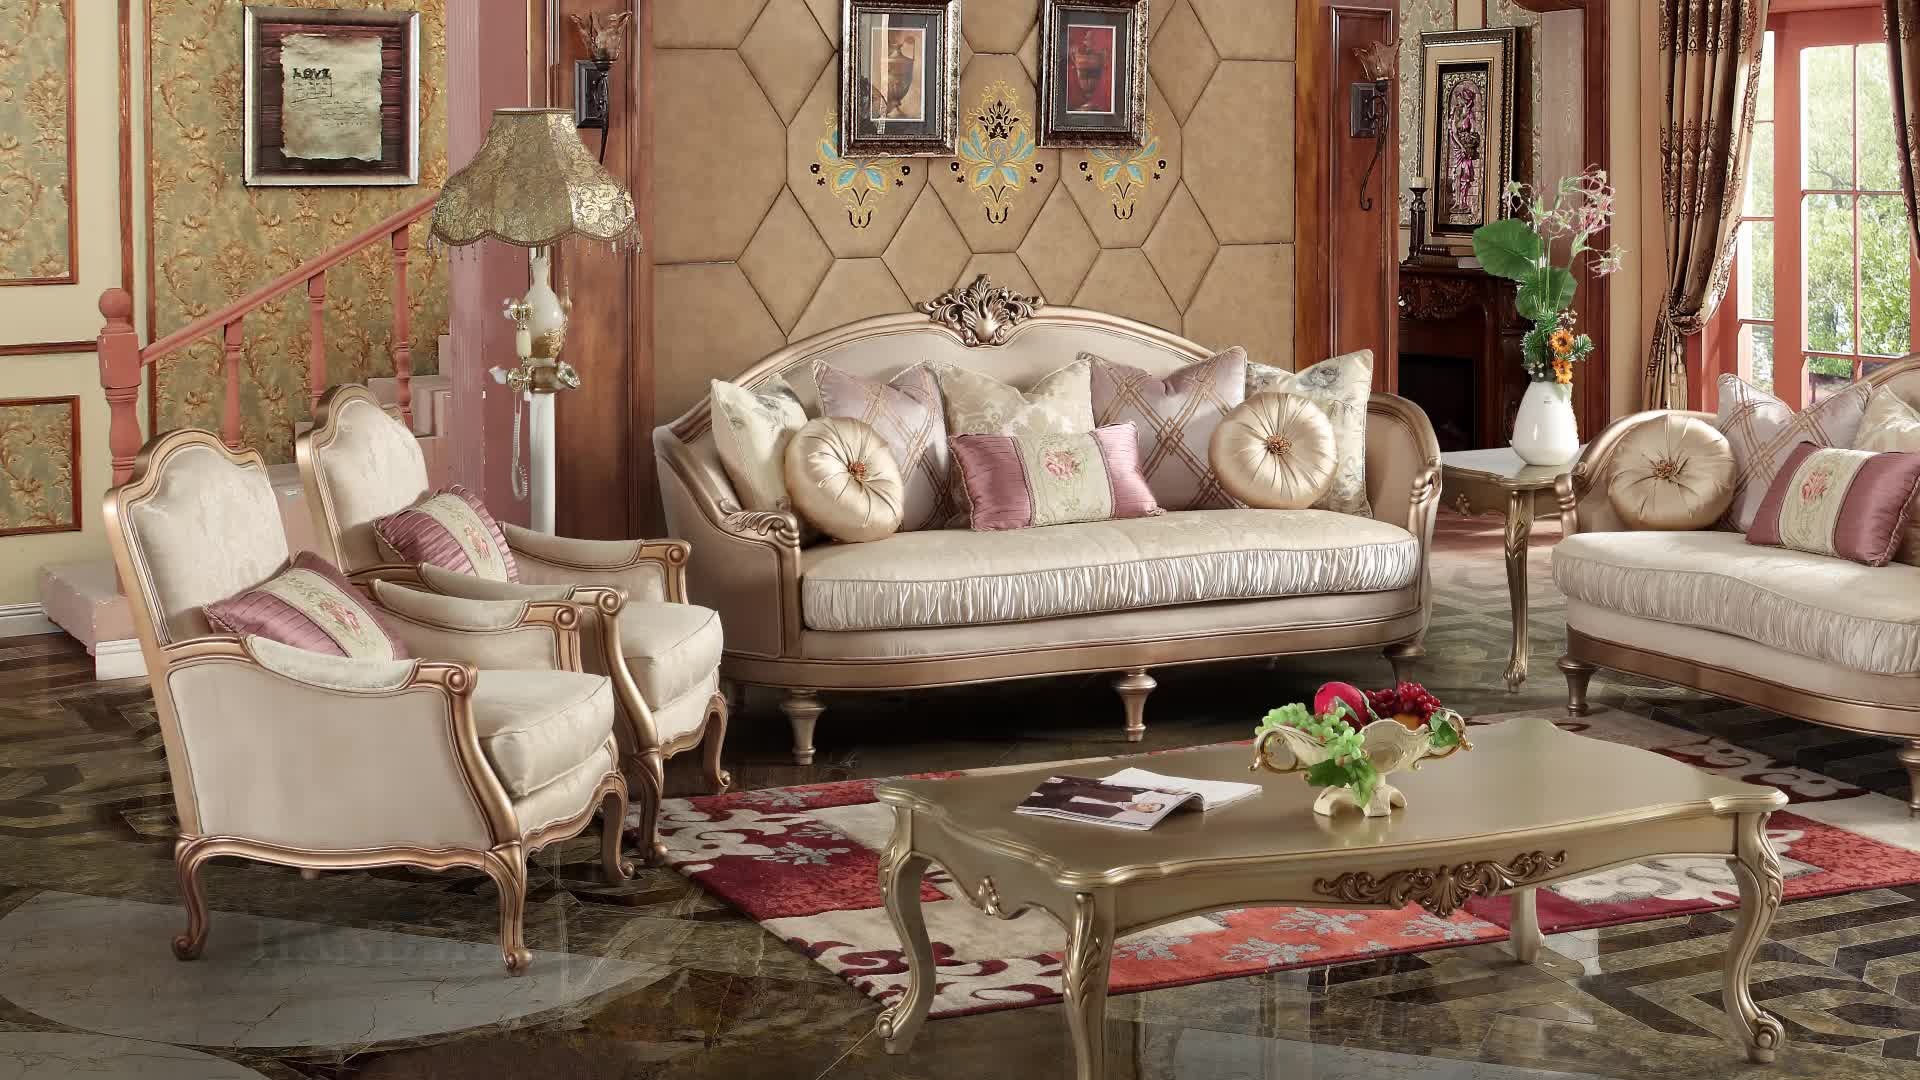 Best Selling Wholesale European Style Luxury Bedroom Set Furniture Fabric Solid Wood Sofa Set With Coffee Table